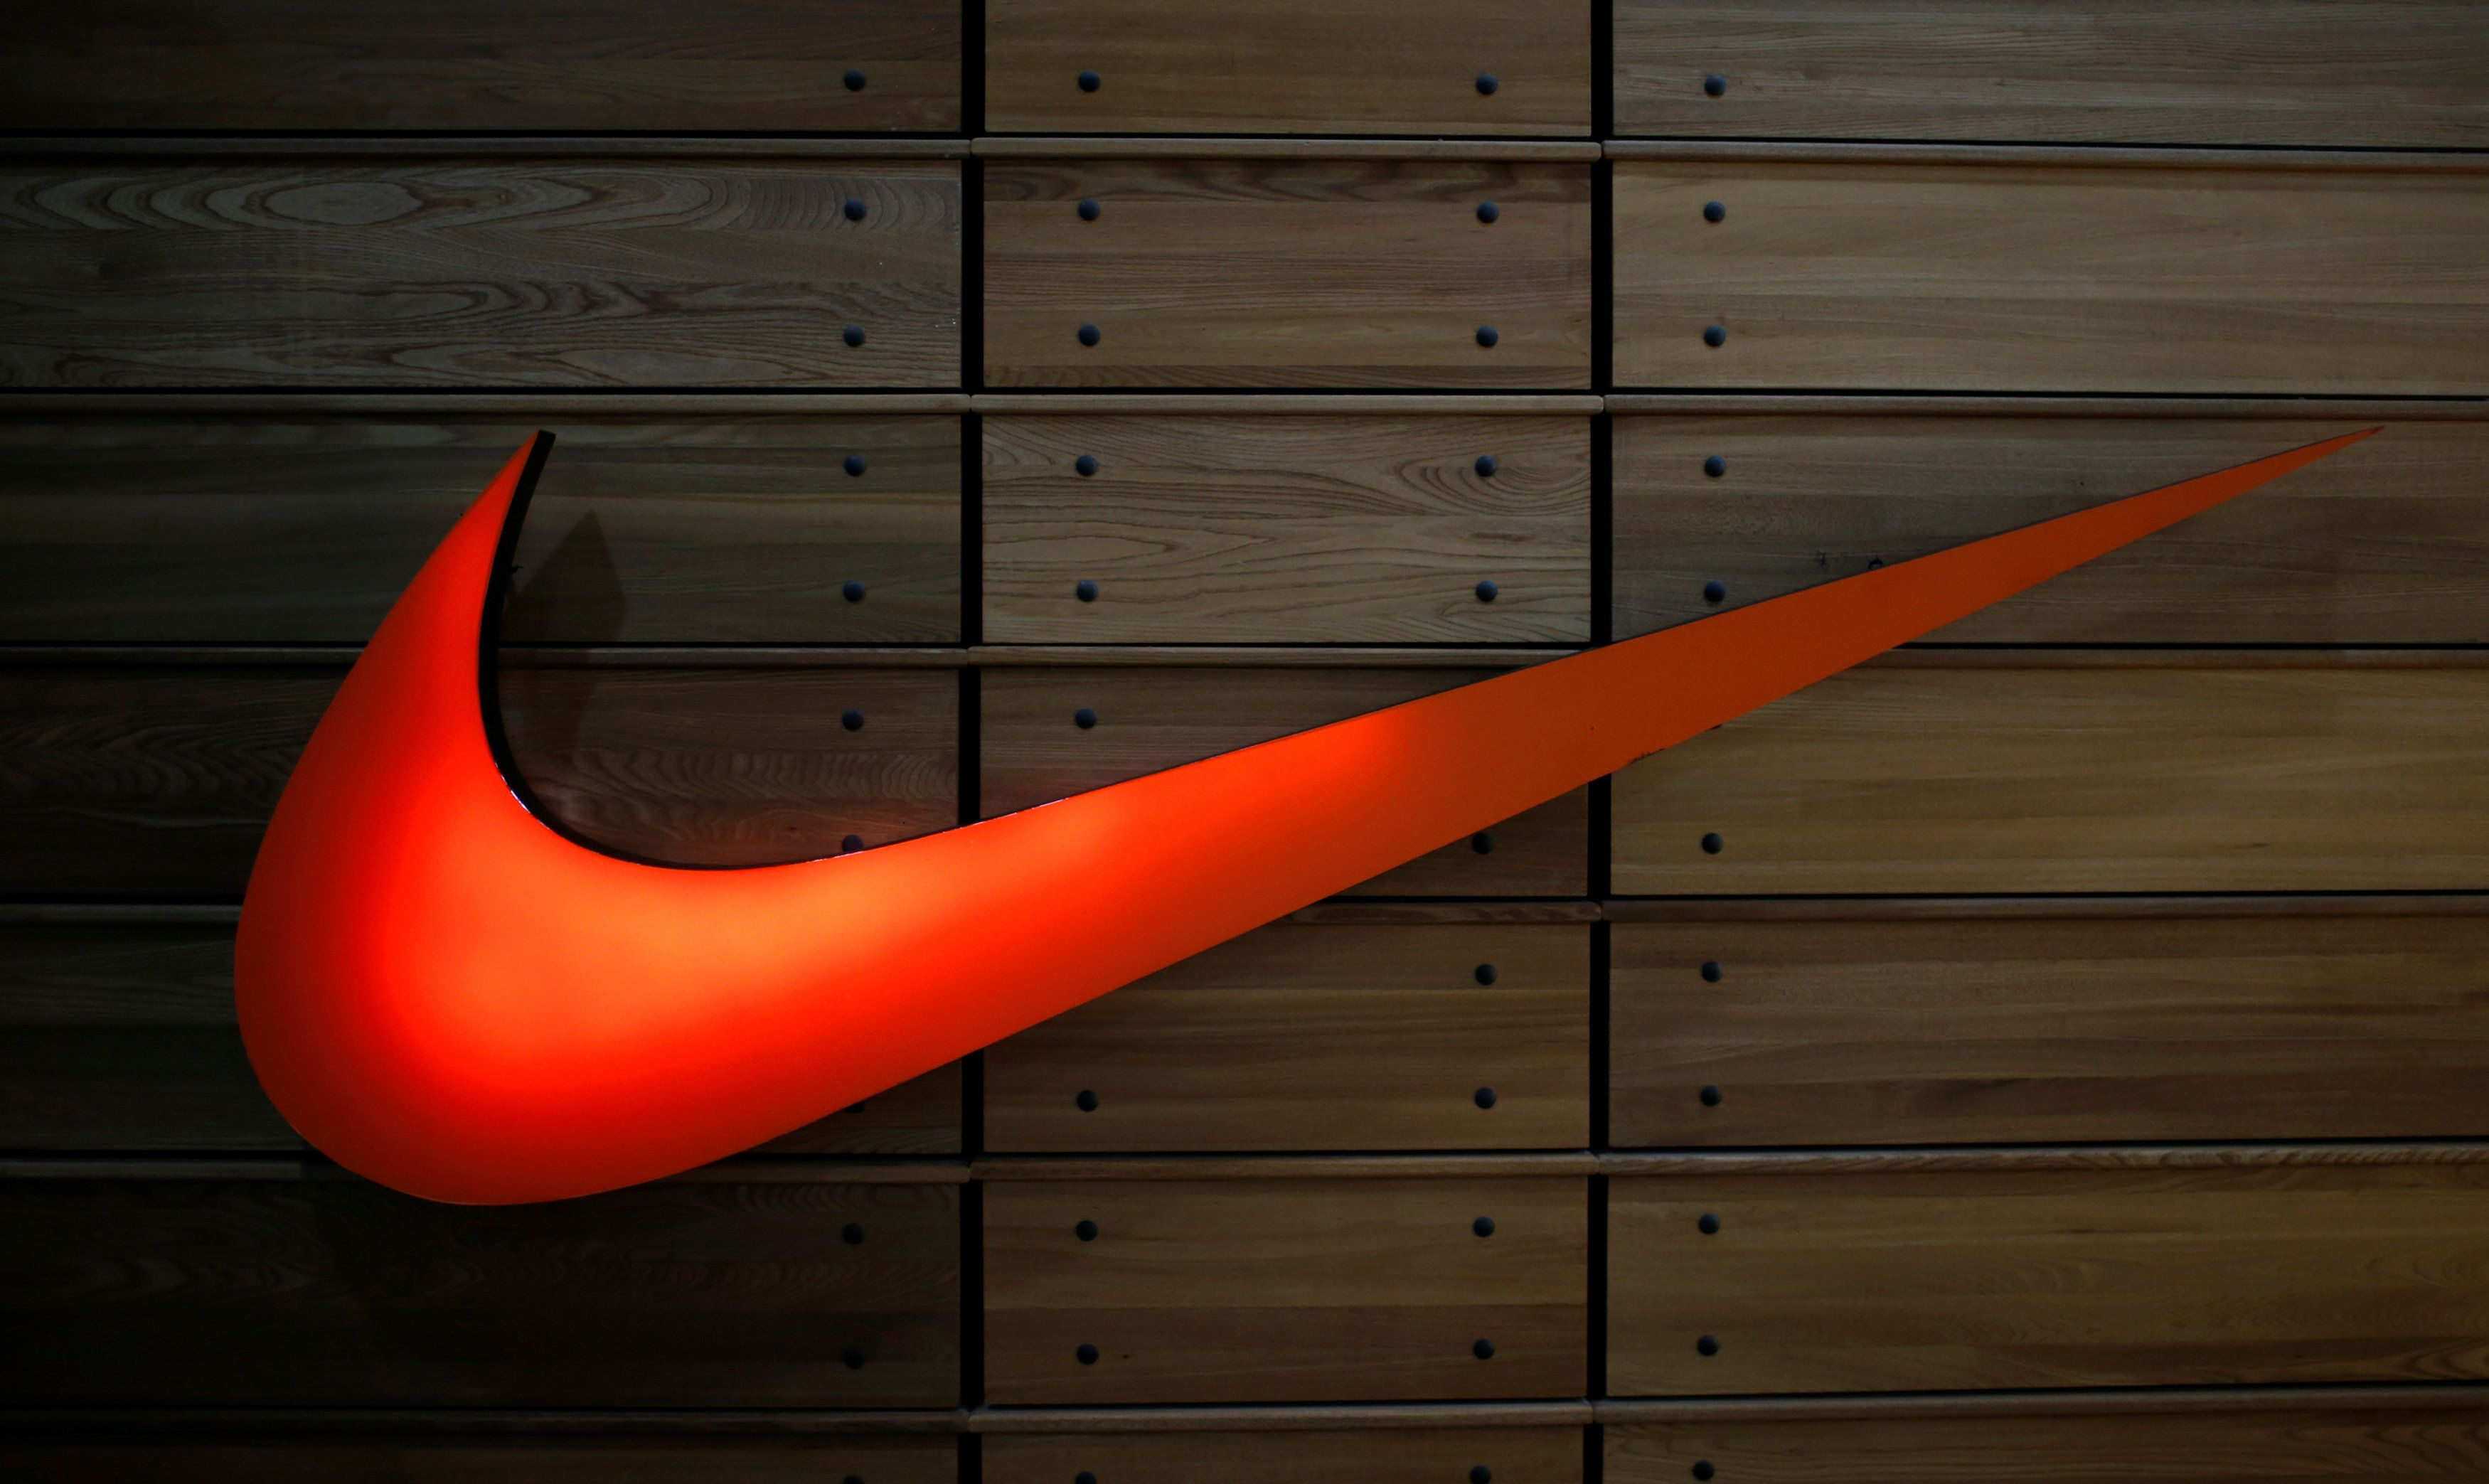 The logo of Nike sportswear maker is seen at a company's store at Tbilisi Mall in Tbilisi, Georgia, April 22, 2016. REUTERS/David Mdzinarishvili